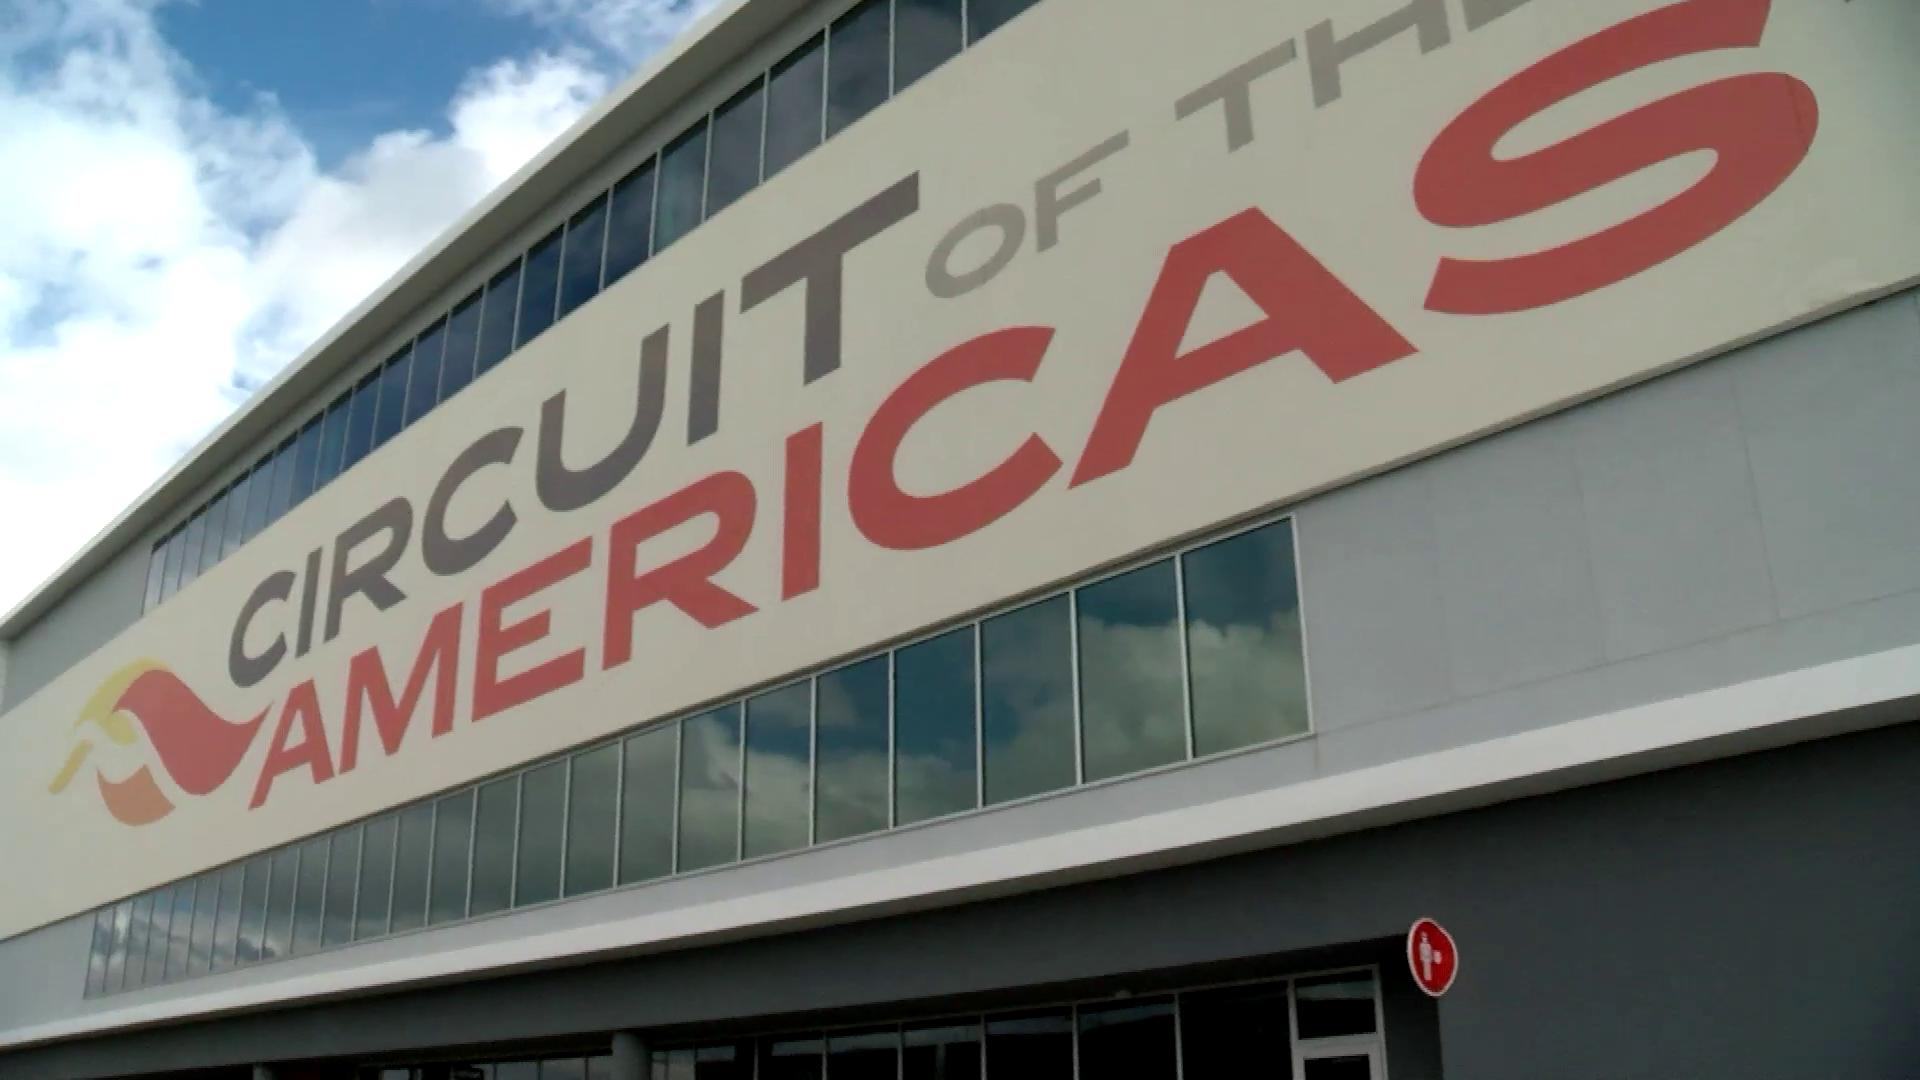 Circuit of the Americas hosts the US Grand Prix for the sixth year. (CBS Austin)